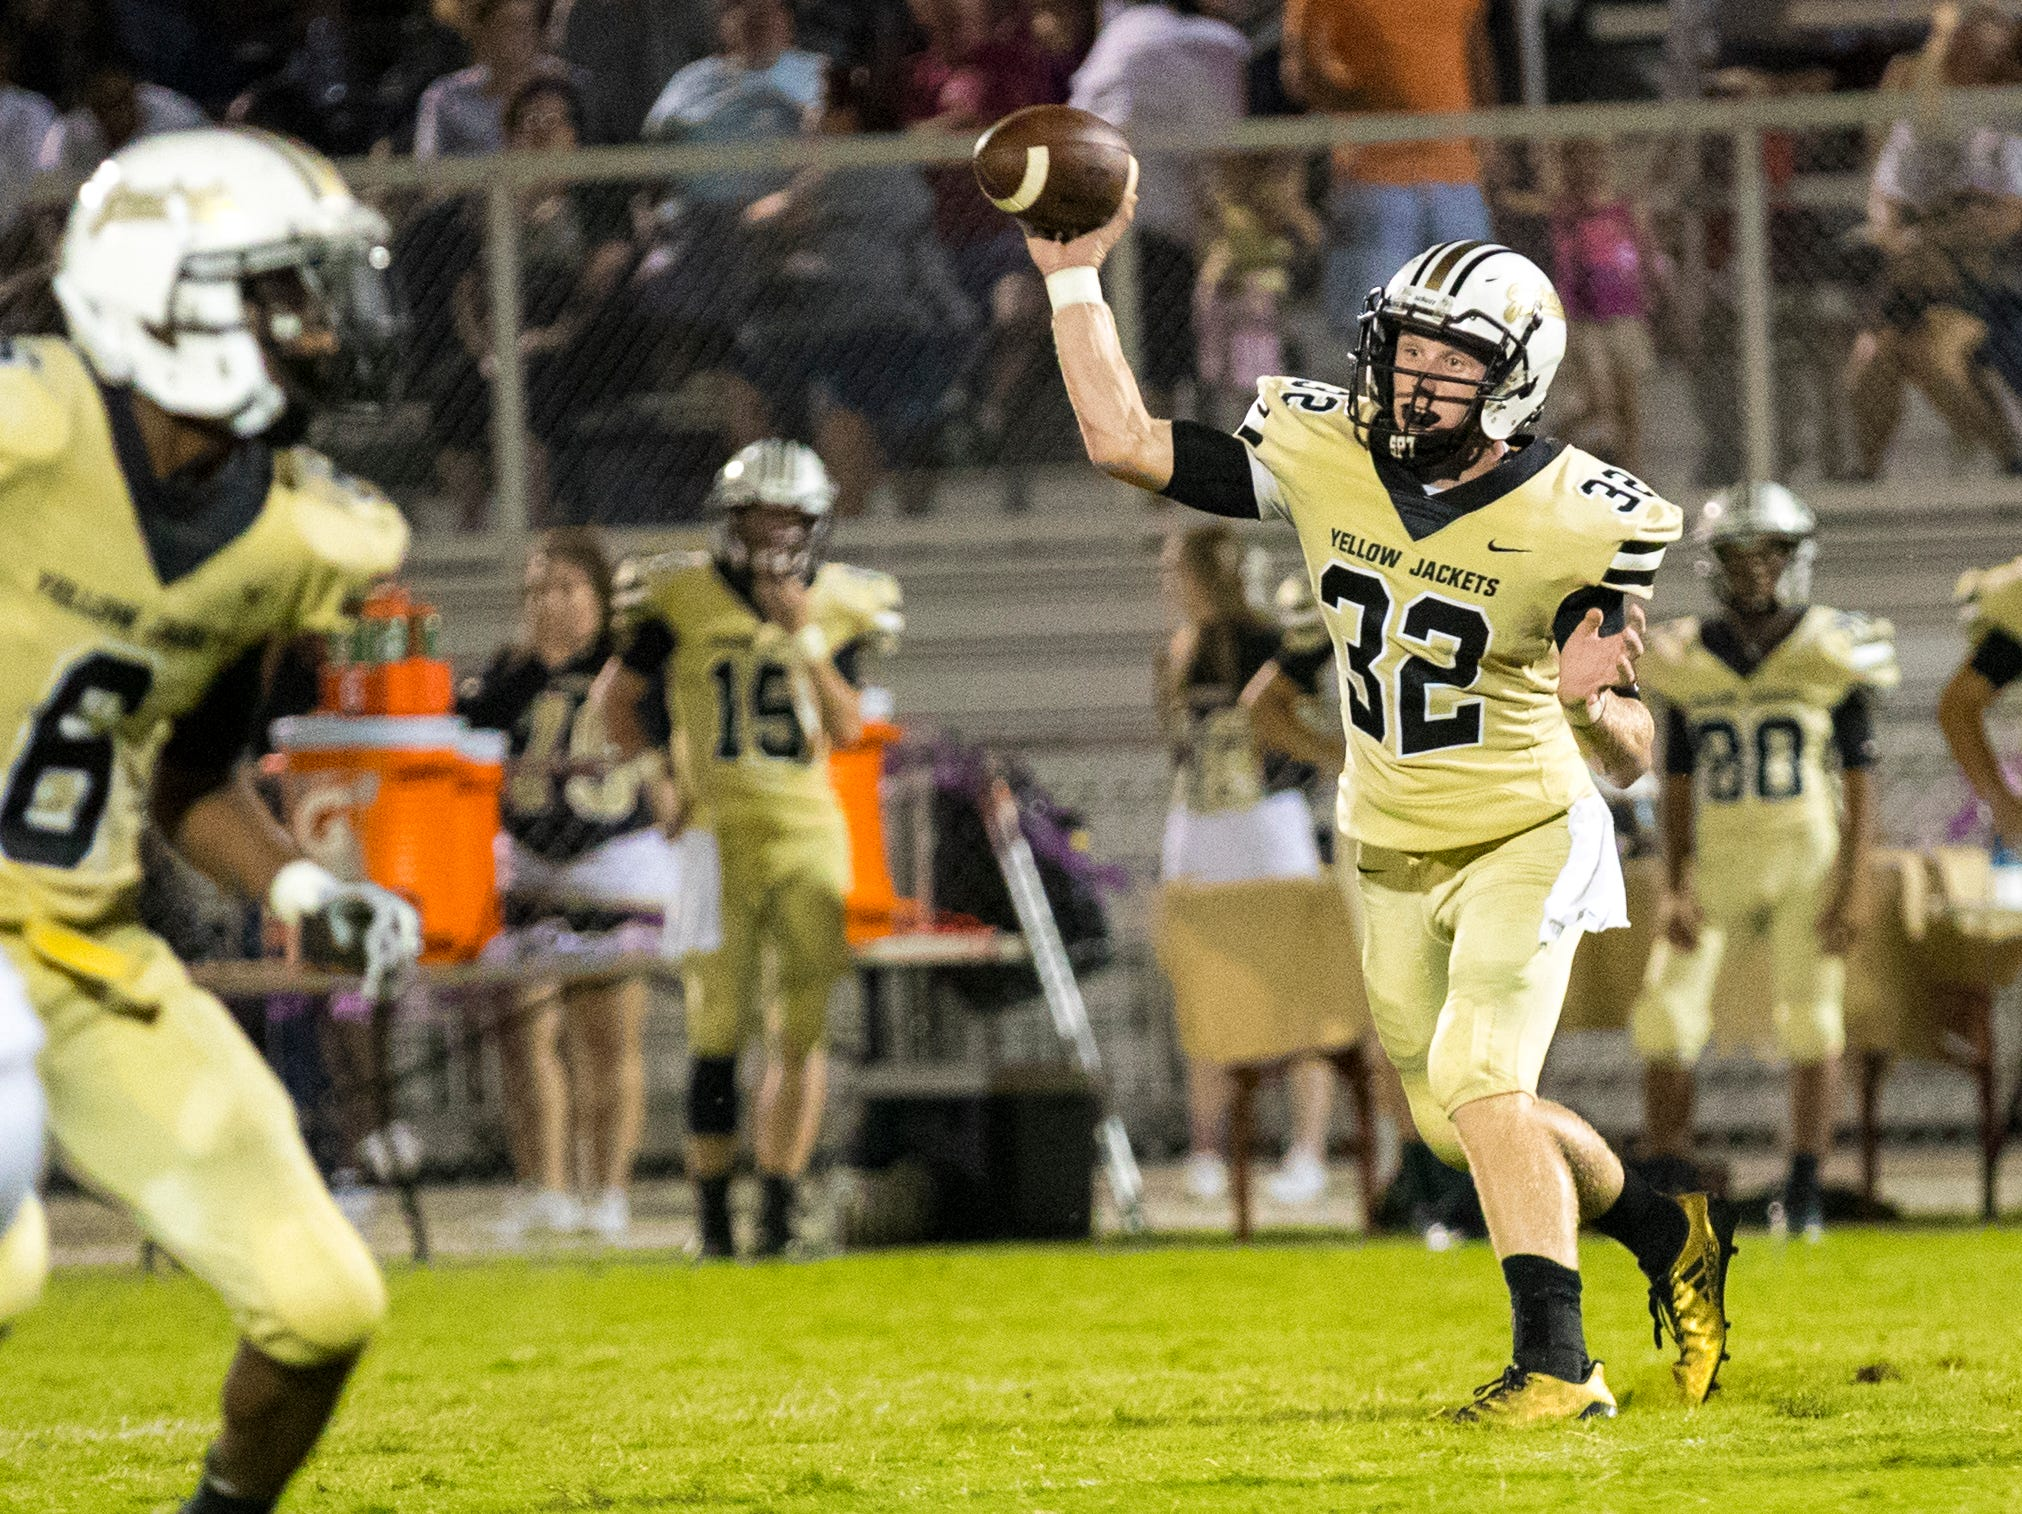 Springfield's Bryan Hayes (32) passes during Springfield's game against White House at Springfield High School in Springfield on Friday, Sept. 14, 2018.